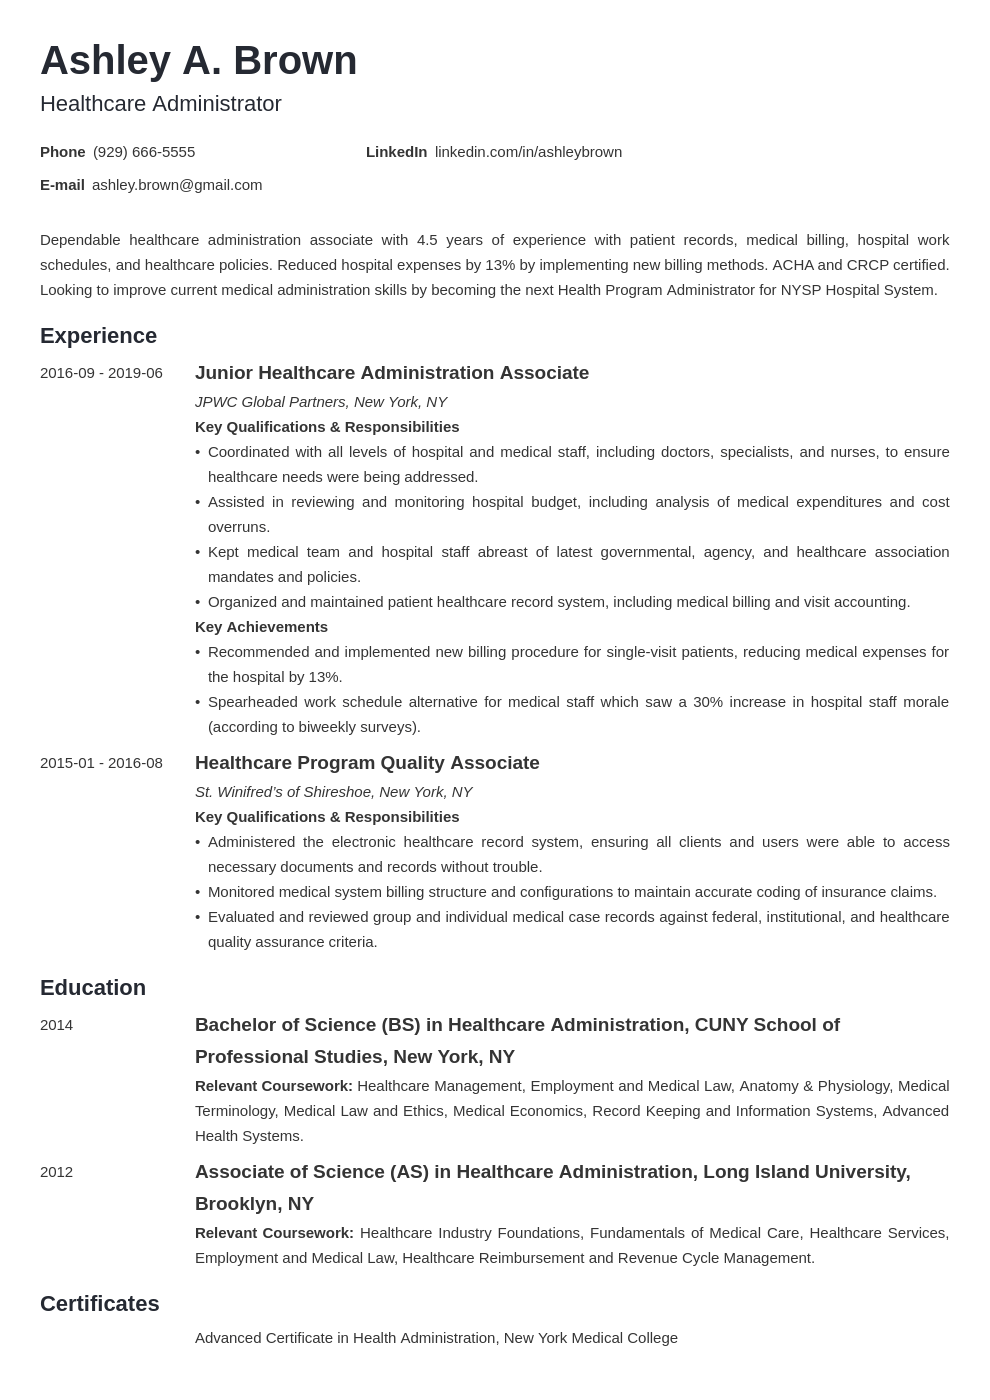 Healthcare Professional Resume Samples Amp Writing Tips